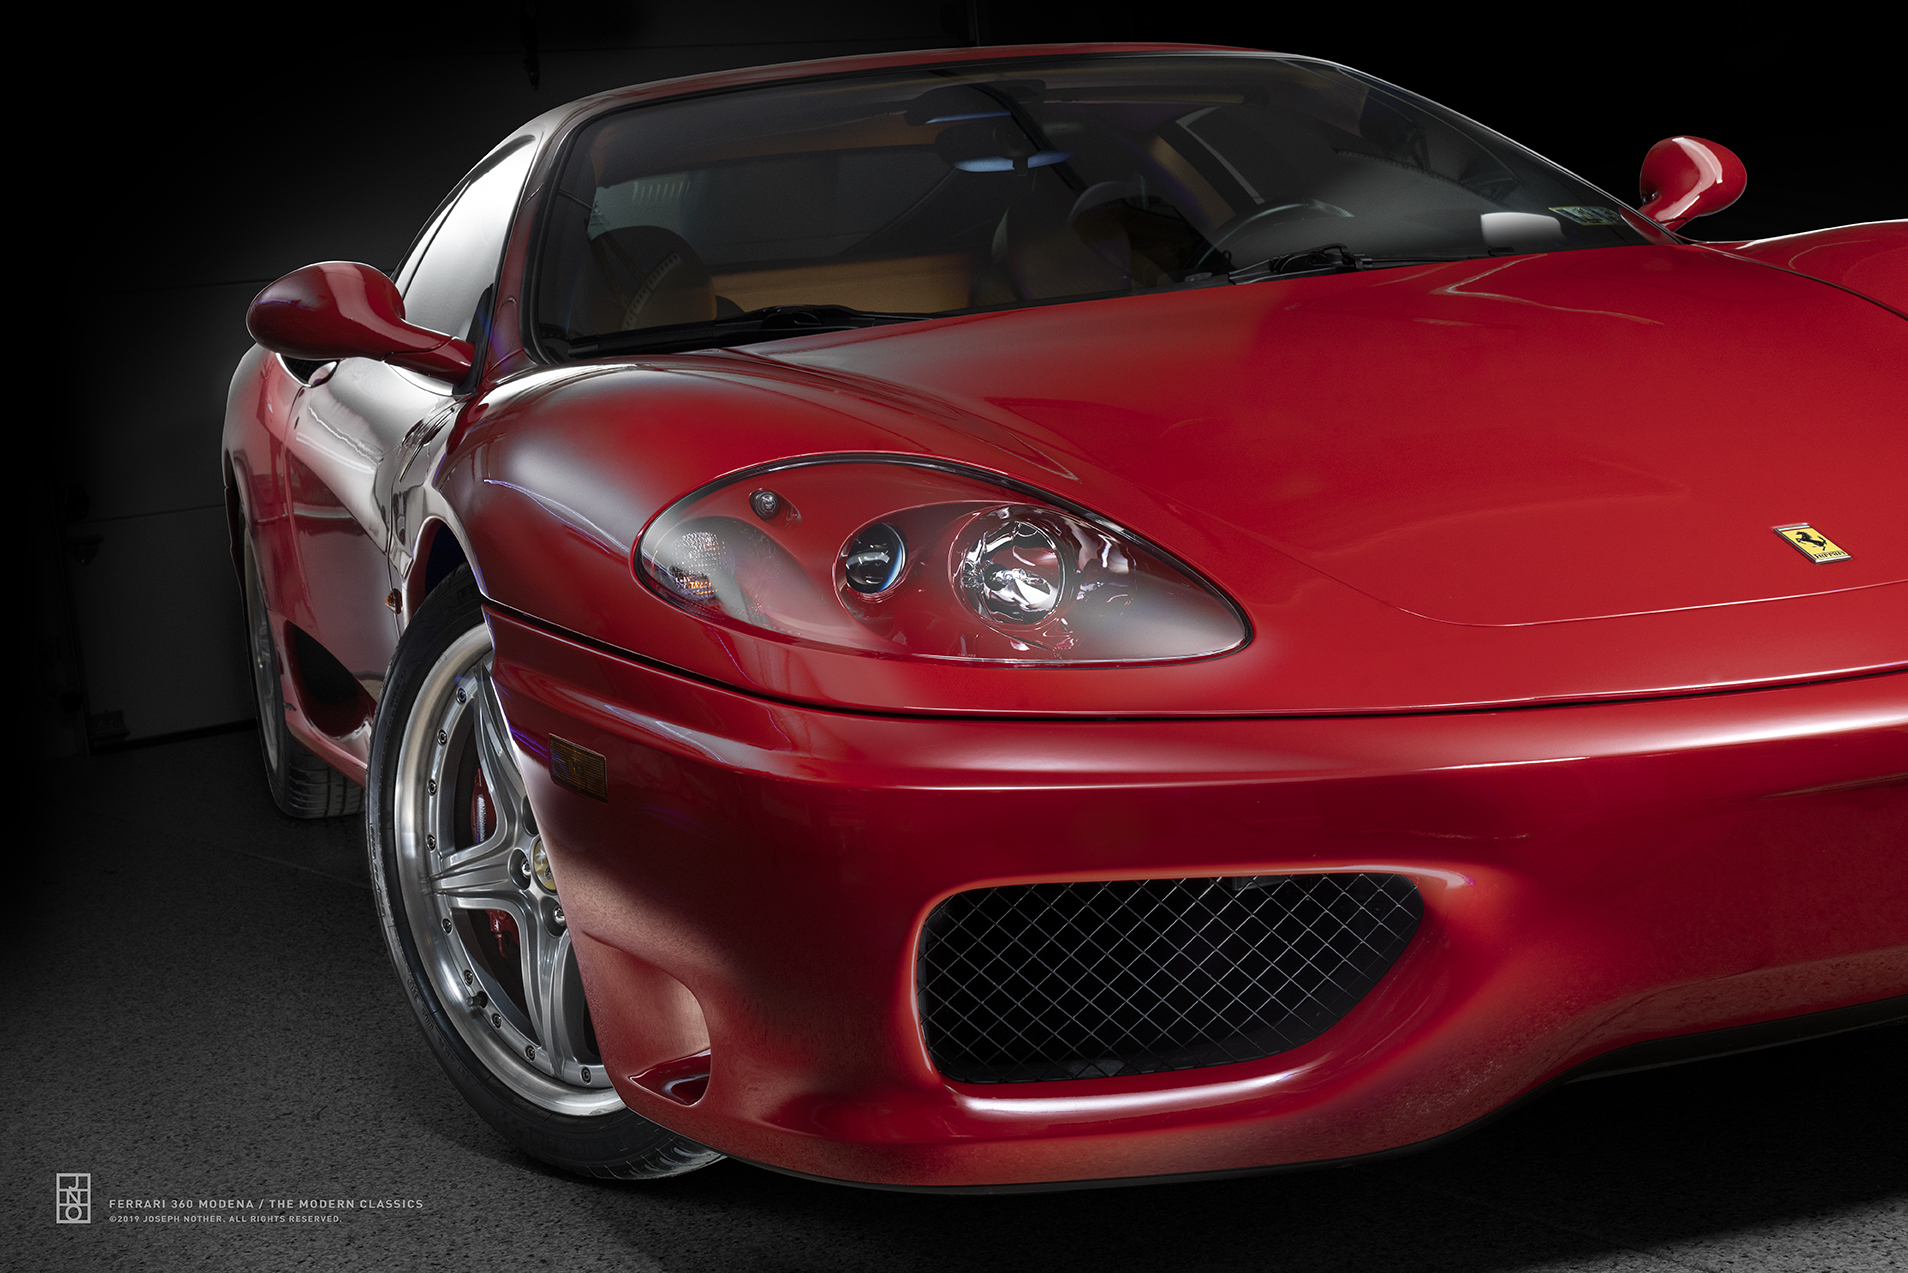 Ferrari 360 Modena Corner Limited Edition Joseph Nother